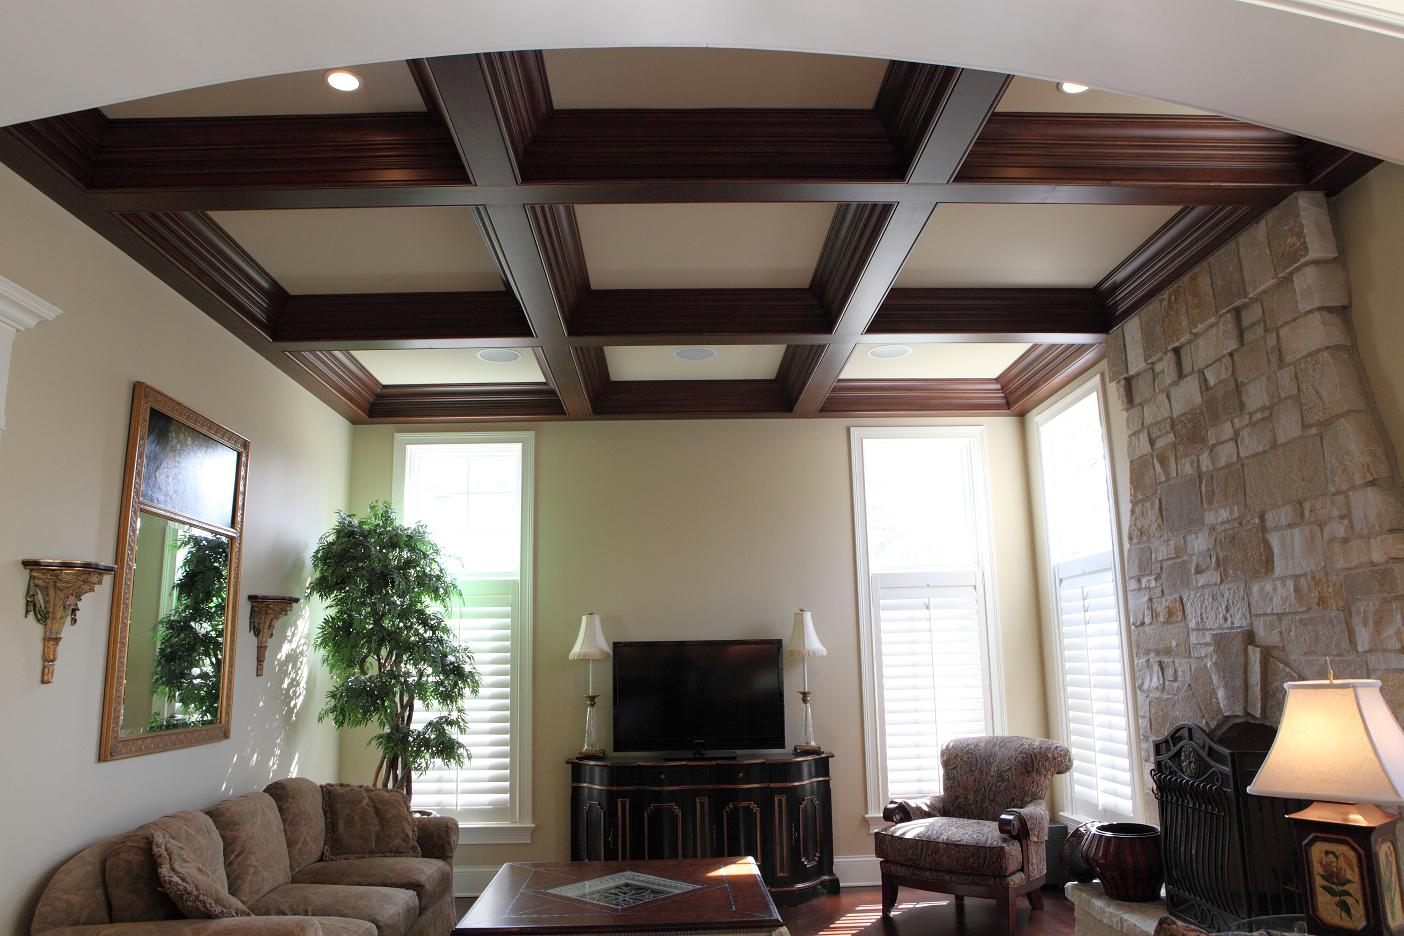 Coffered Ceiling - Battaglia built home in Hinsdale